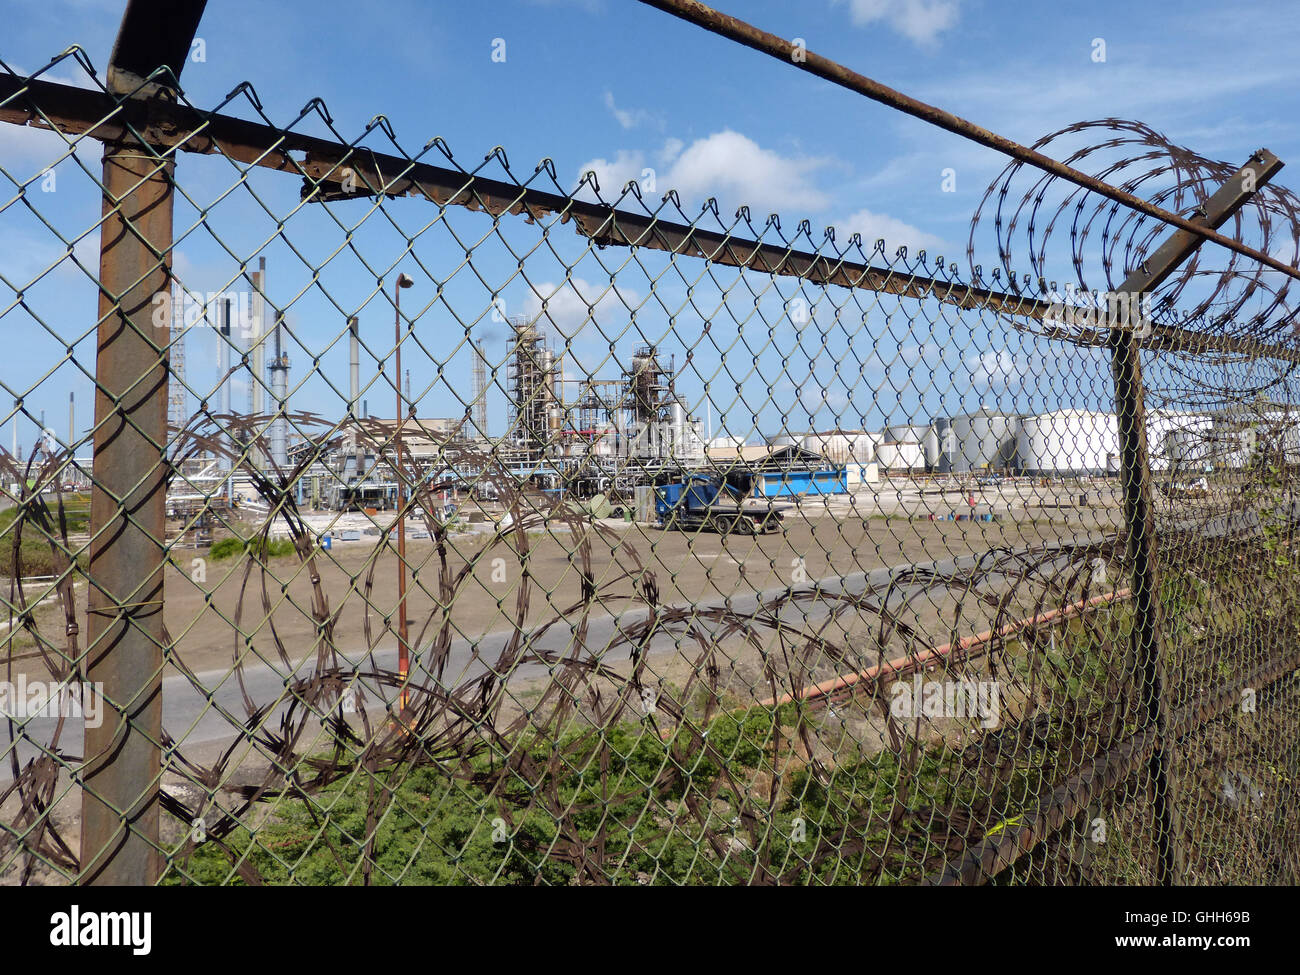 Willemstad, Netherlands. 09th Aug, 2016. A look through the metal fence at the Isla refinery on the island of Curacao - Stock Image